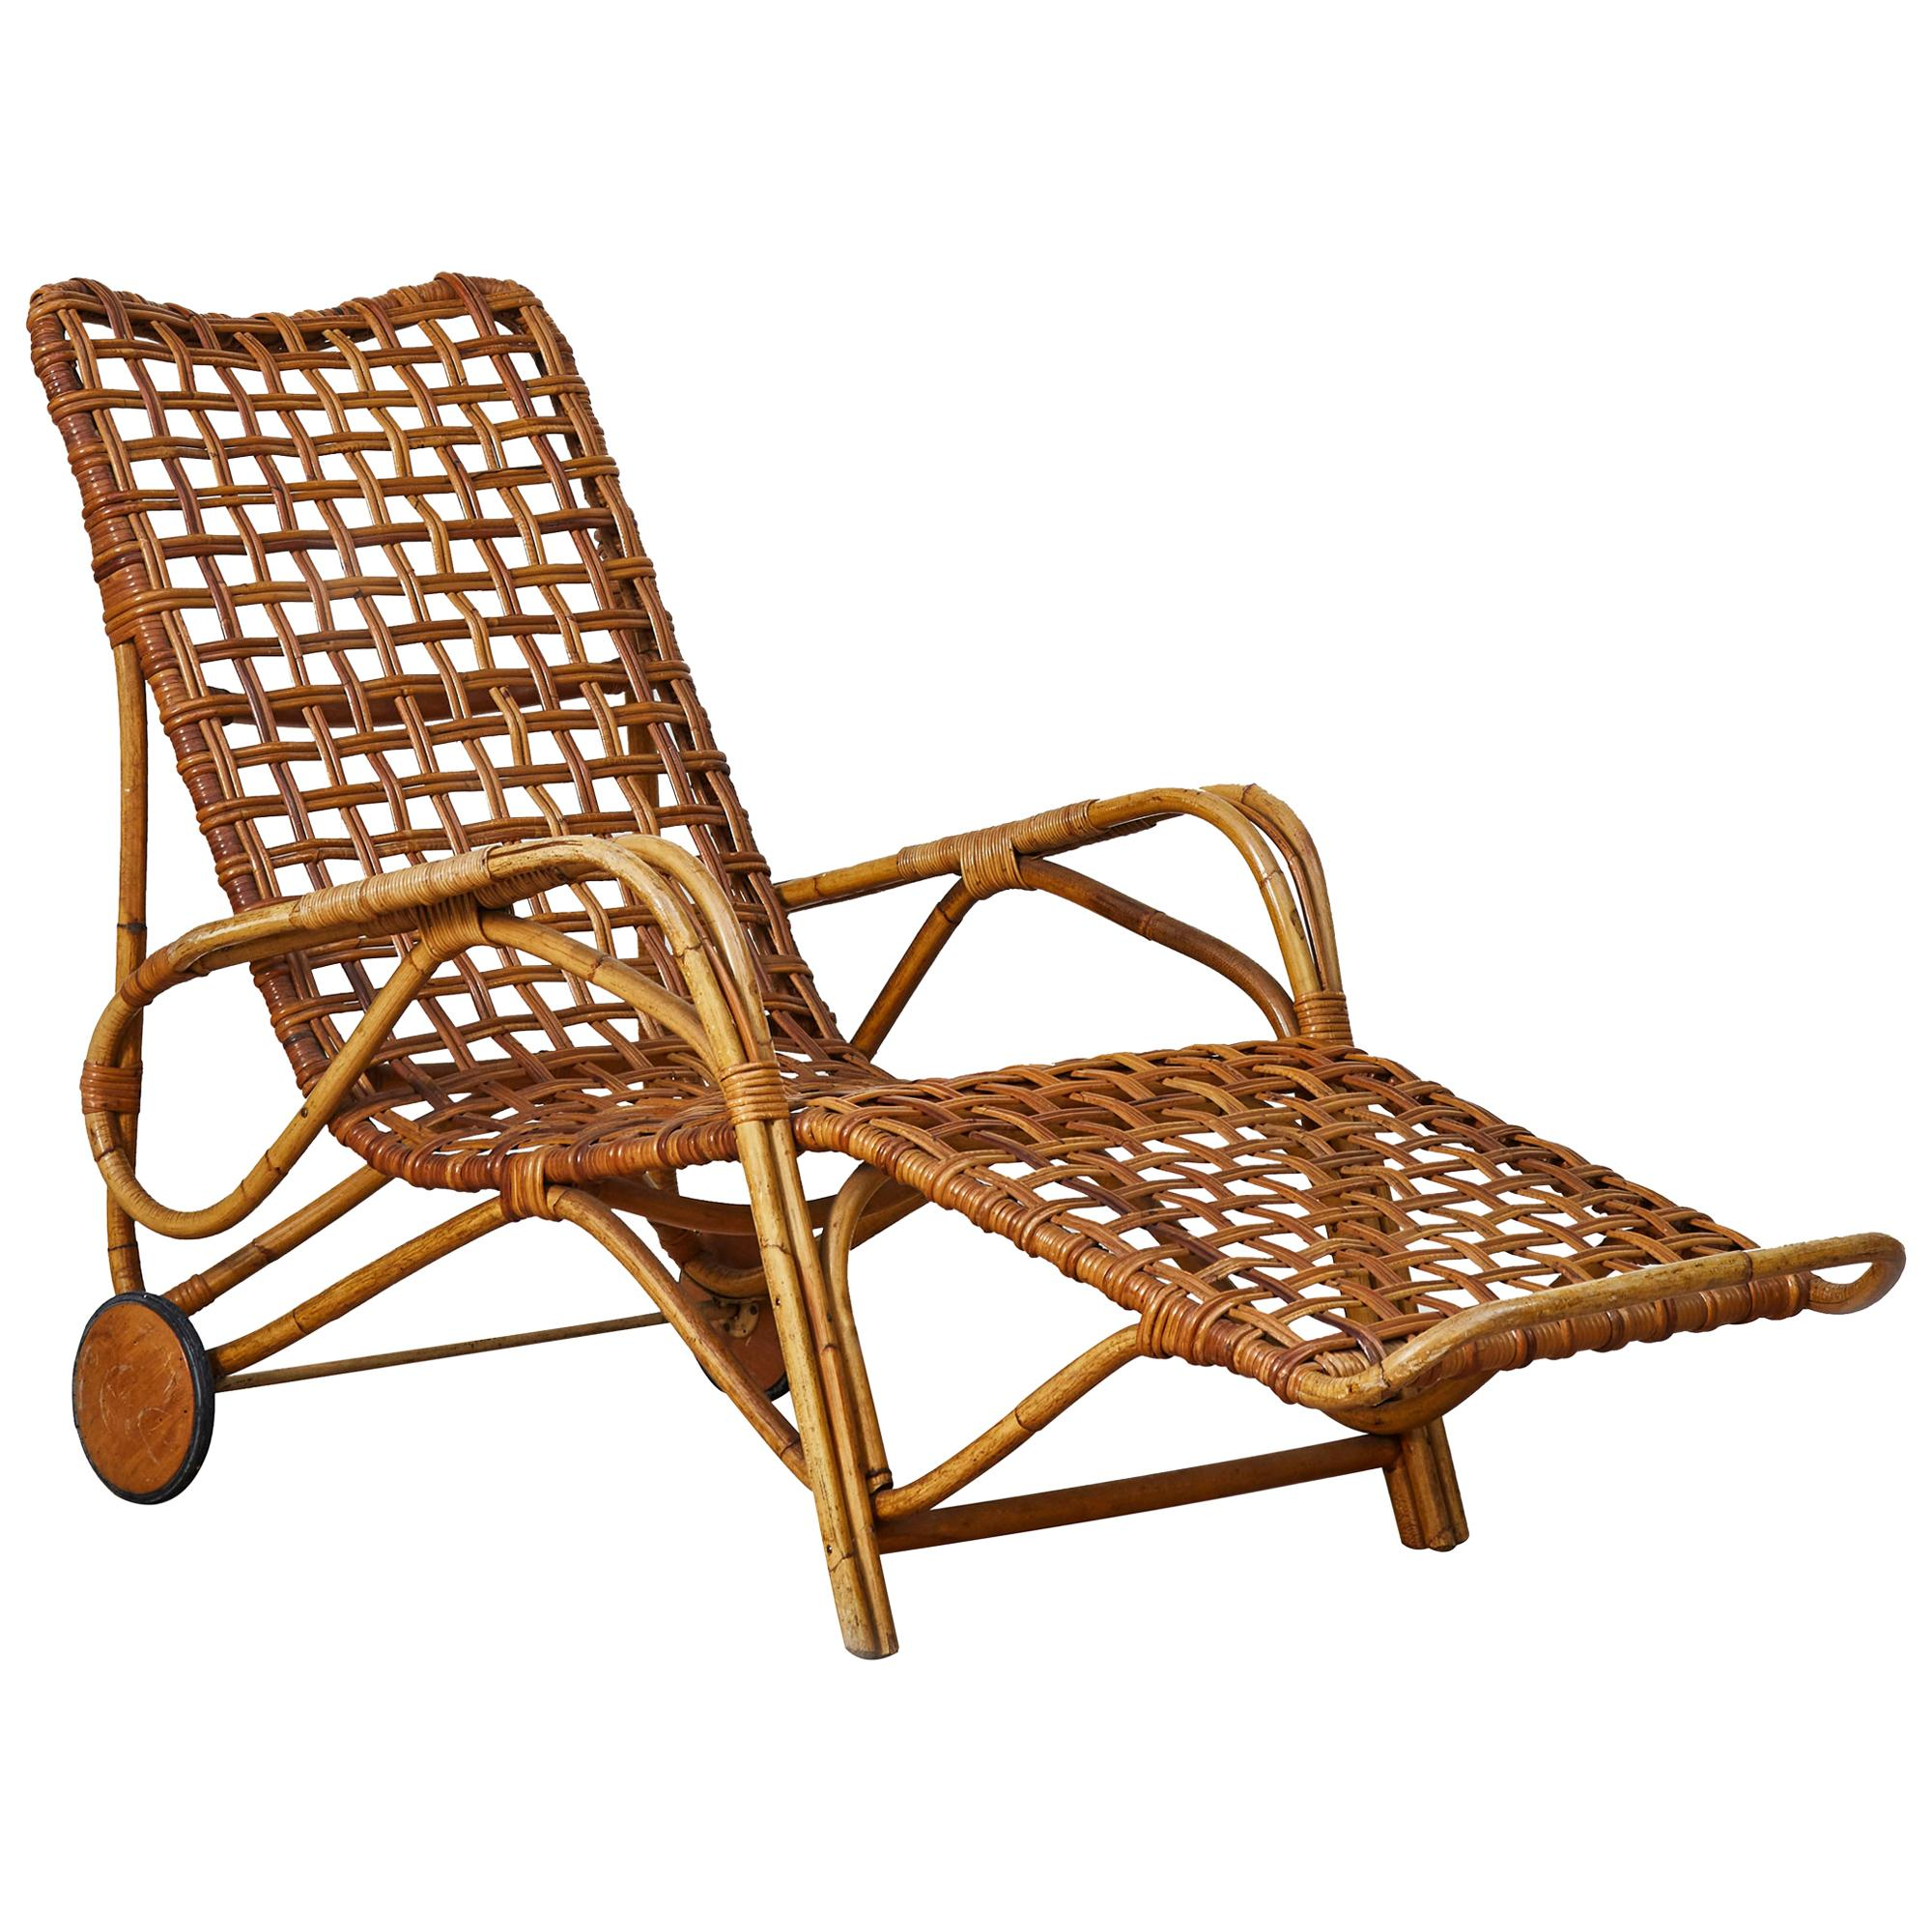 Vintage Lounge Chairs in Rattan